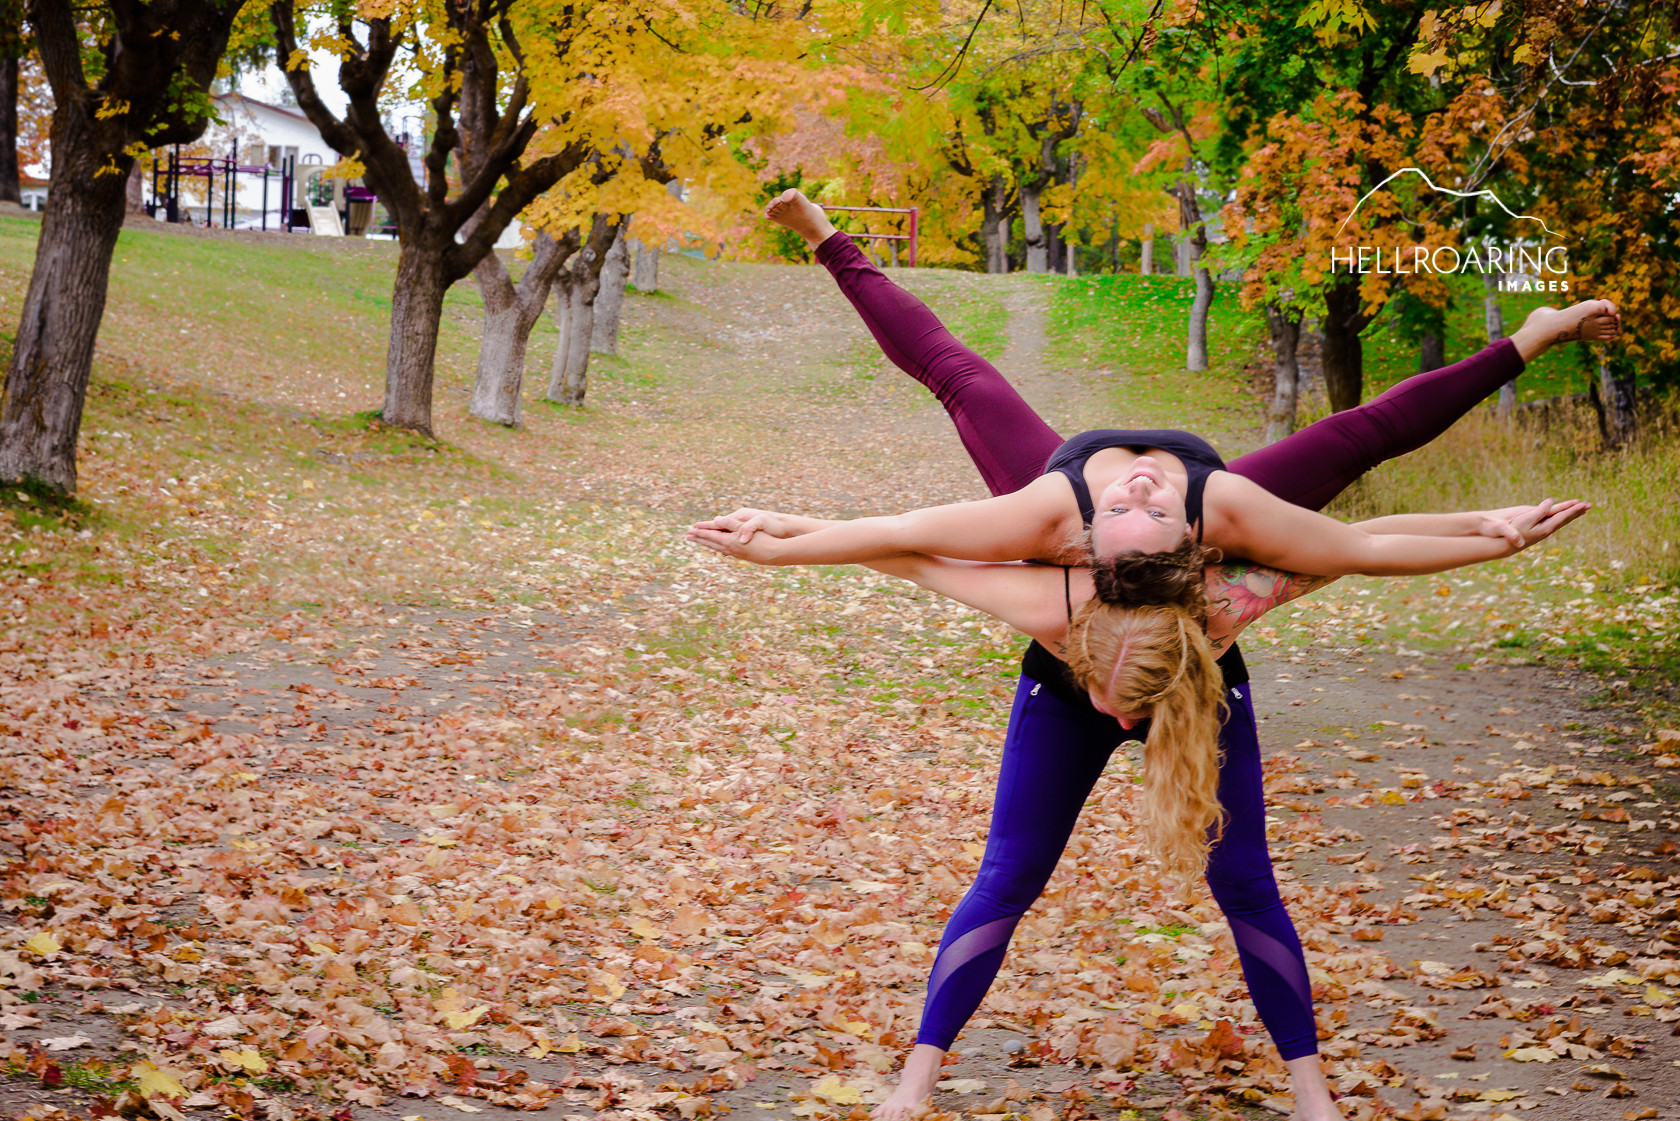 PD-FALL-YOGA-HELLROARING-IMAGES-v3